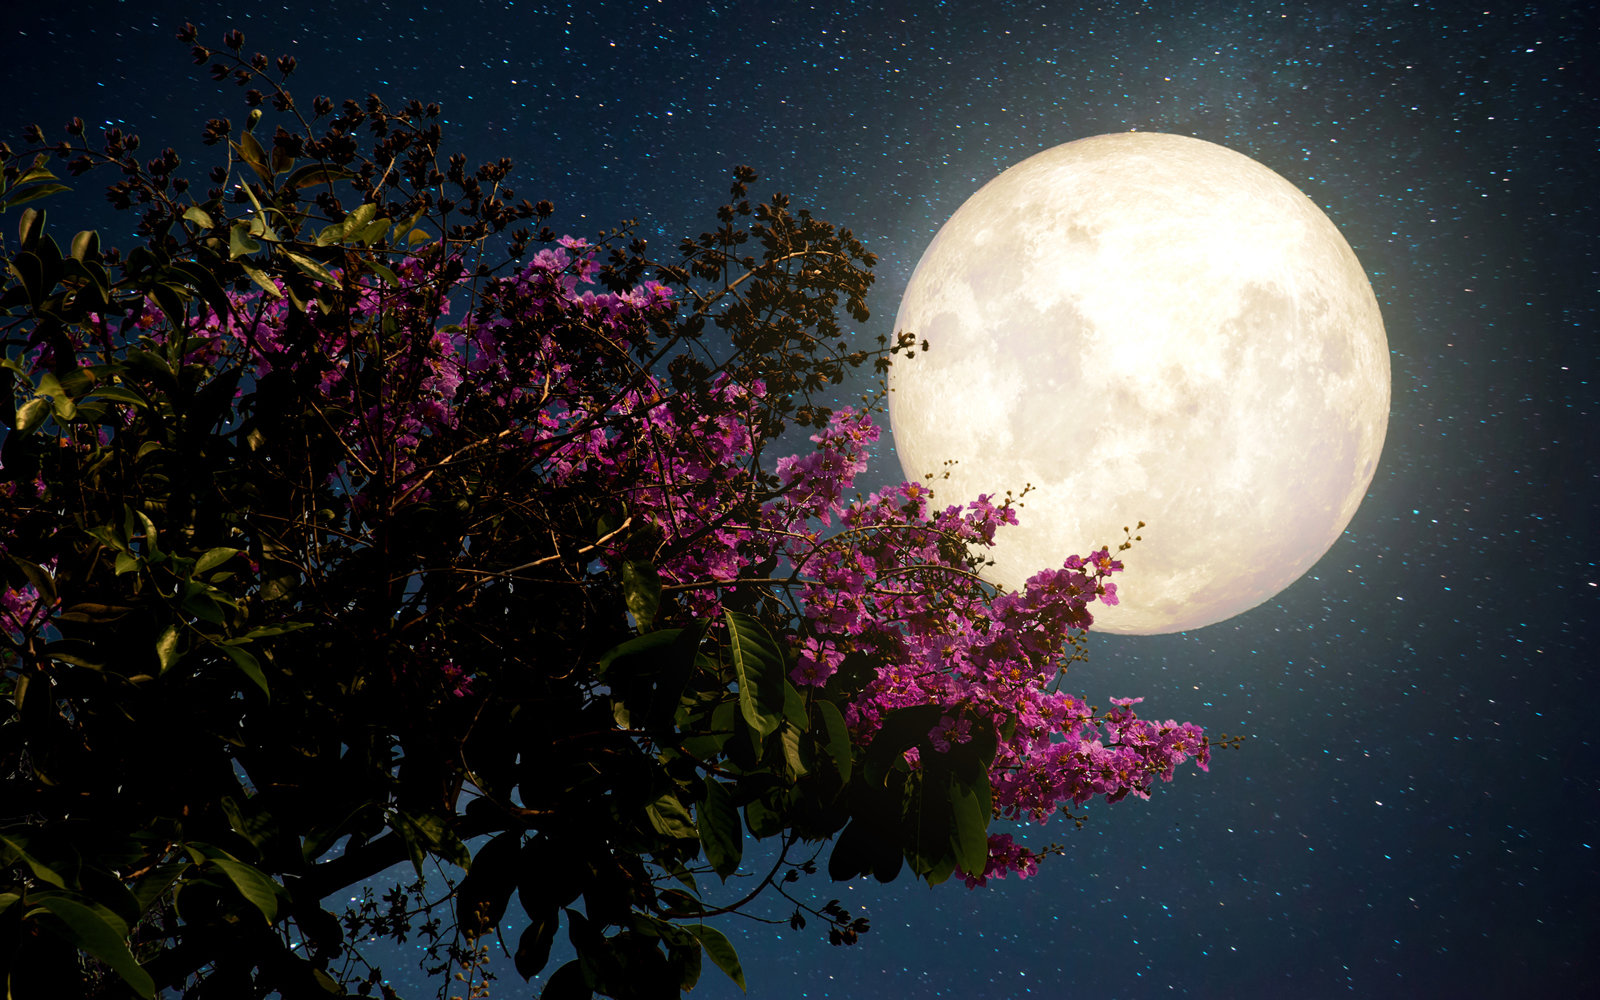 Watch the Flower Moon rise on Wednesday night